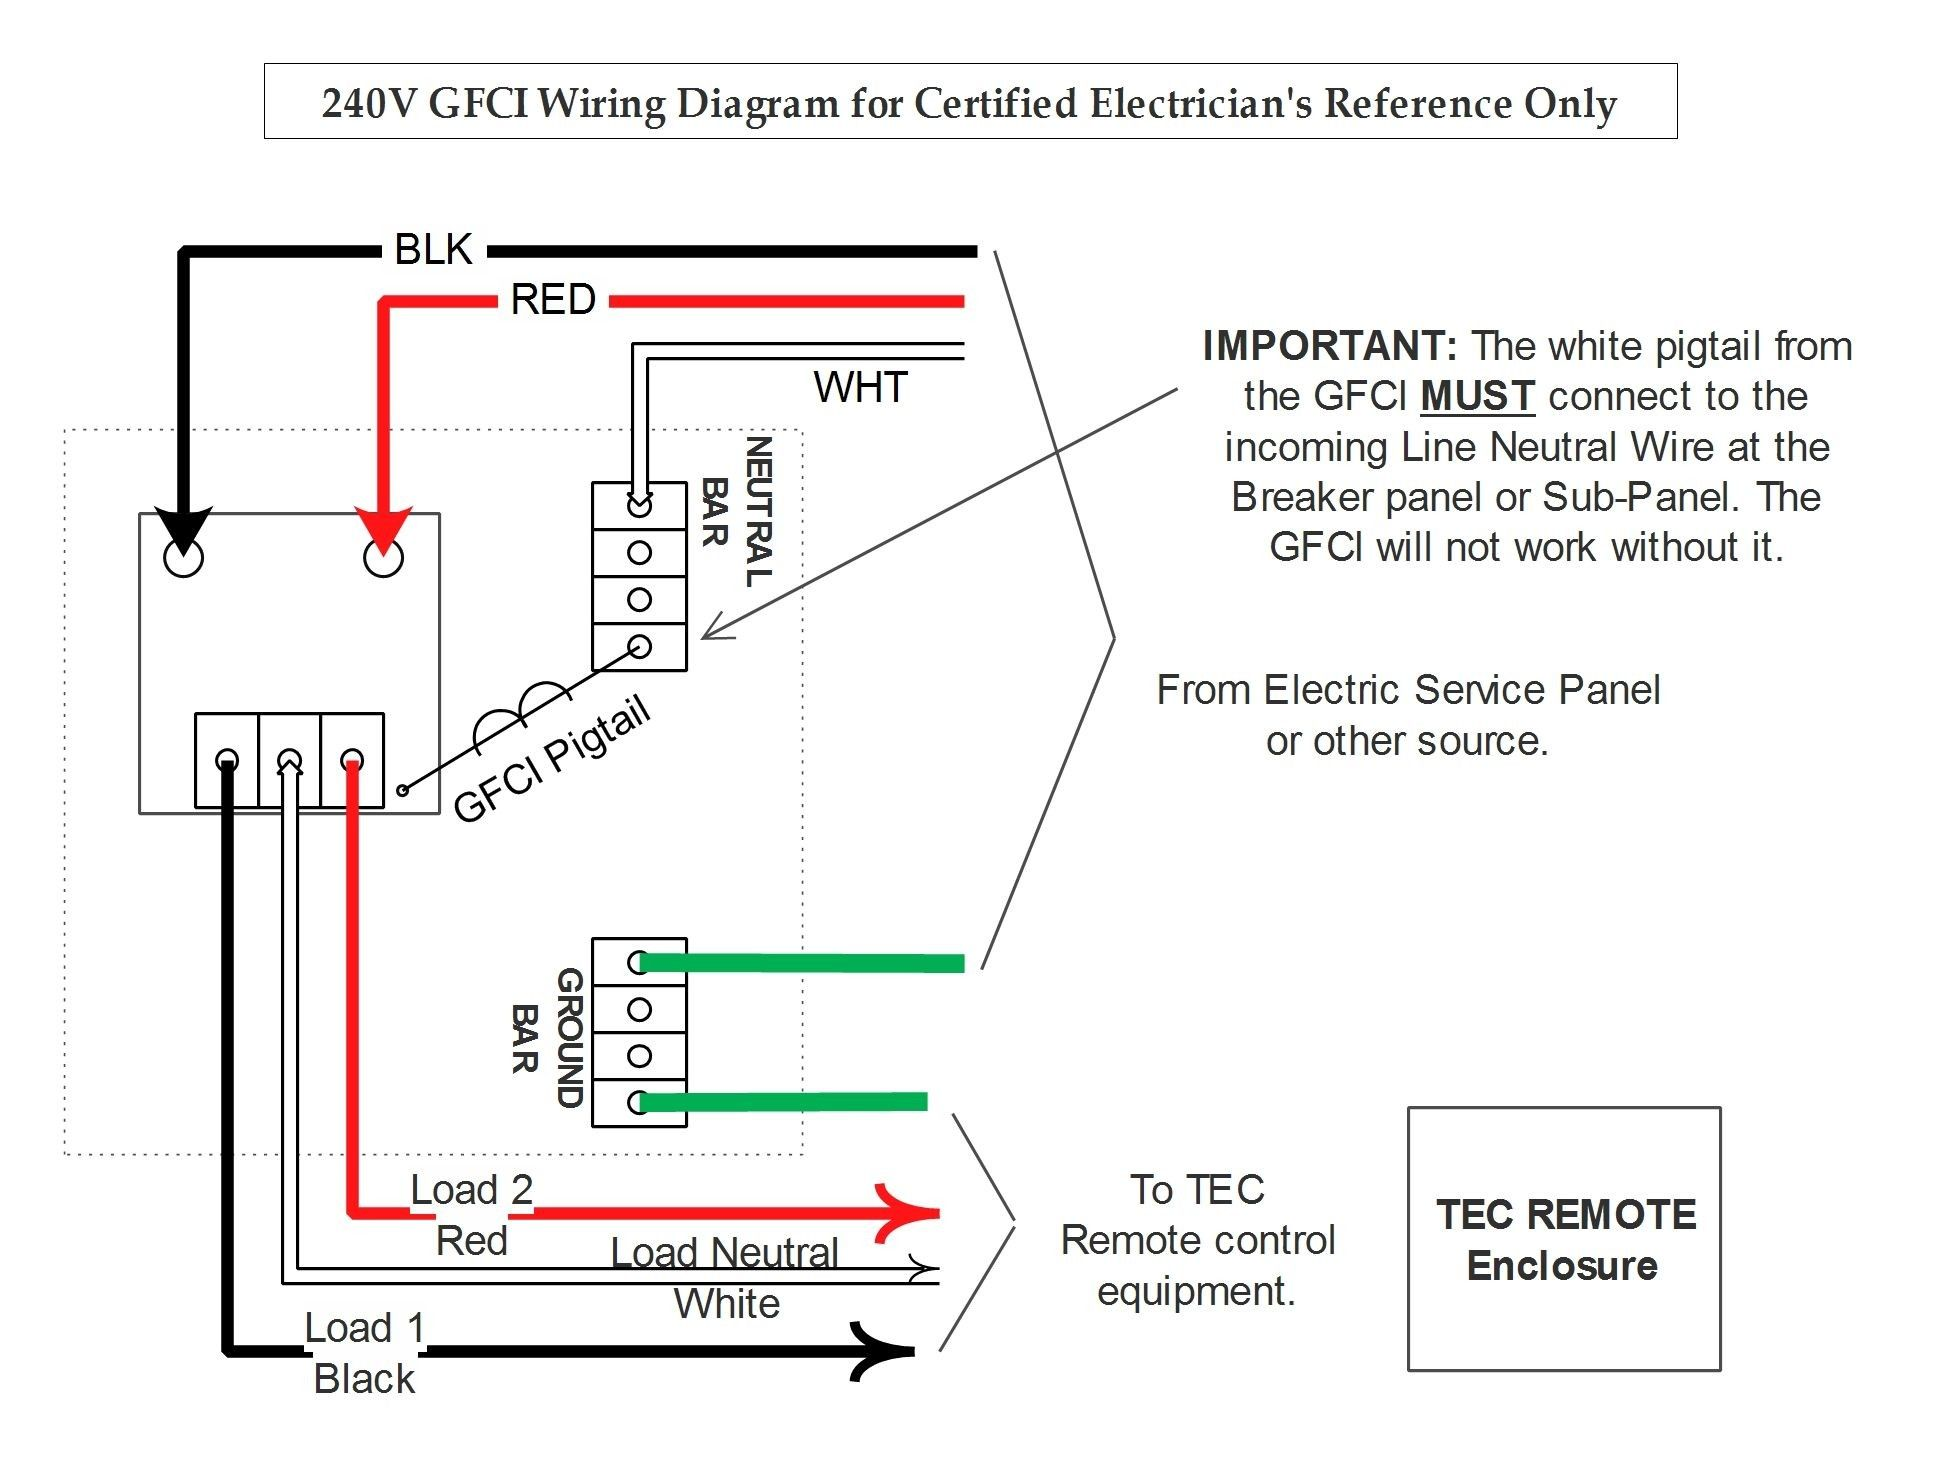 New Wiring Gfci To Switch Diagram Diagram Diagramsample Diagramtemplate Wiringdiagram Diagramchart Worksheet Workshe Diagram Car Lifts Thermostat Wiring